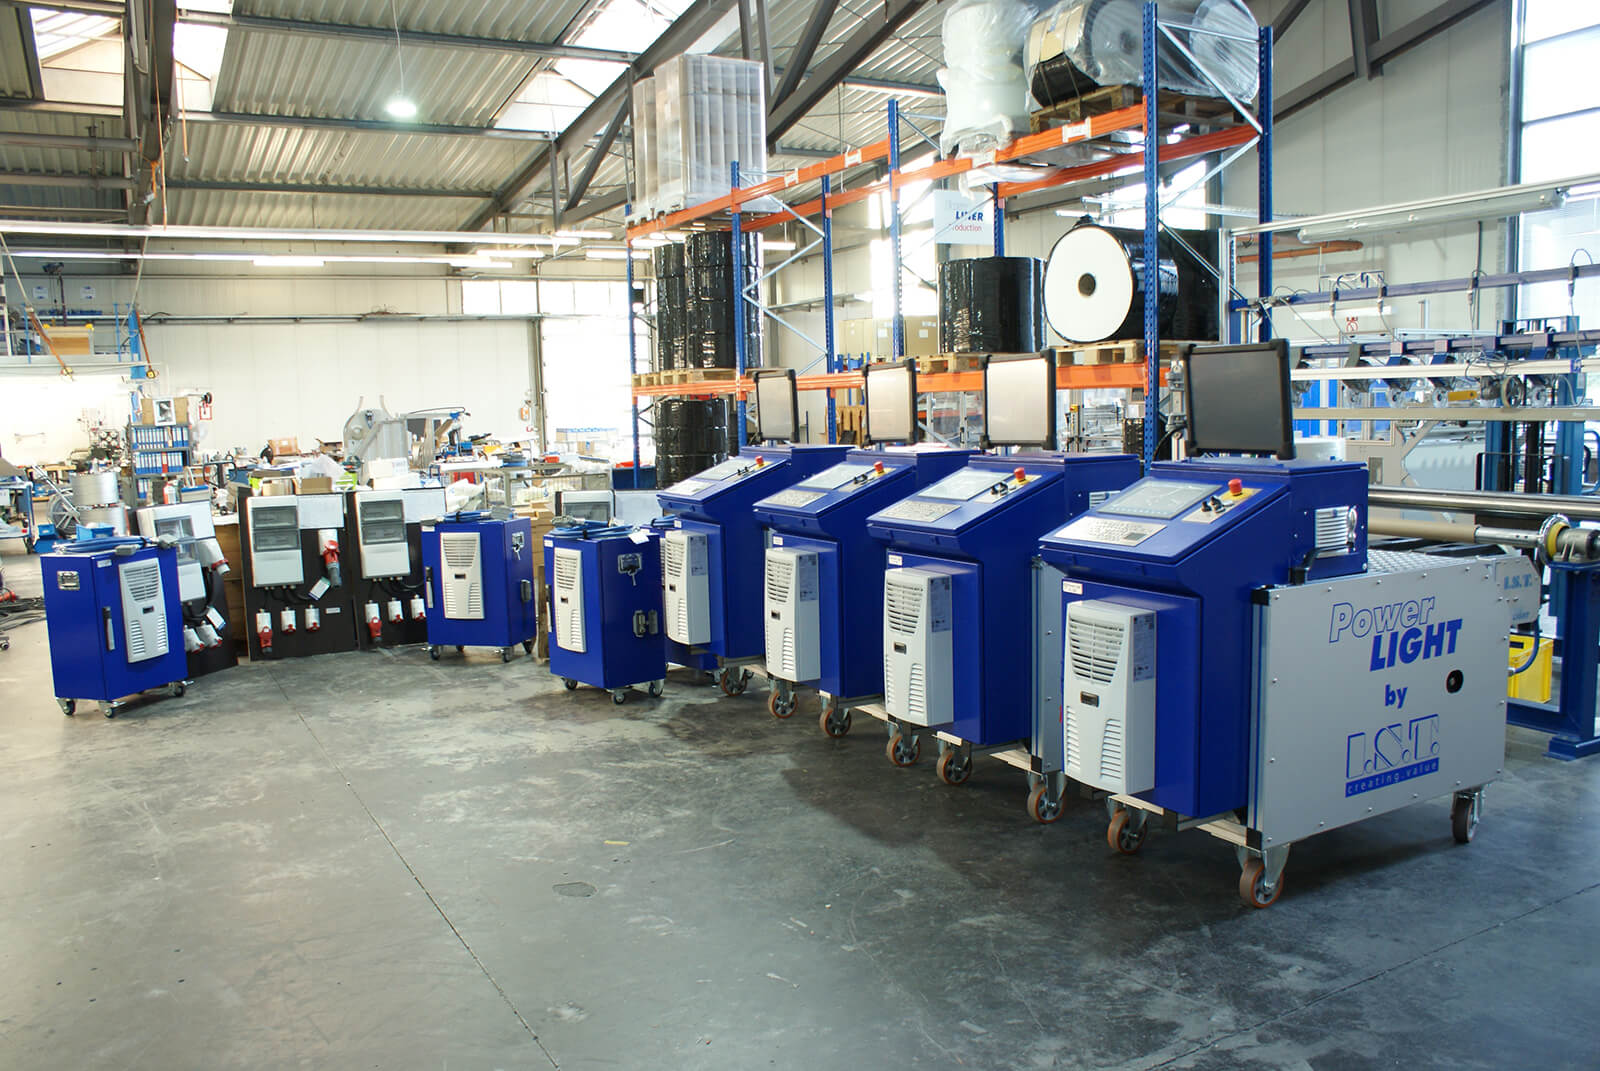 UV compact systems ready for delivery